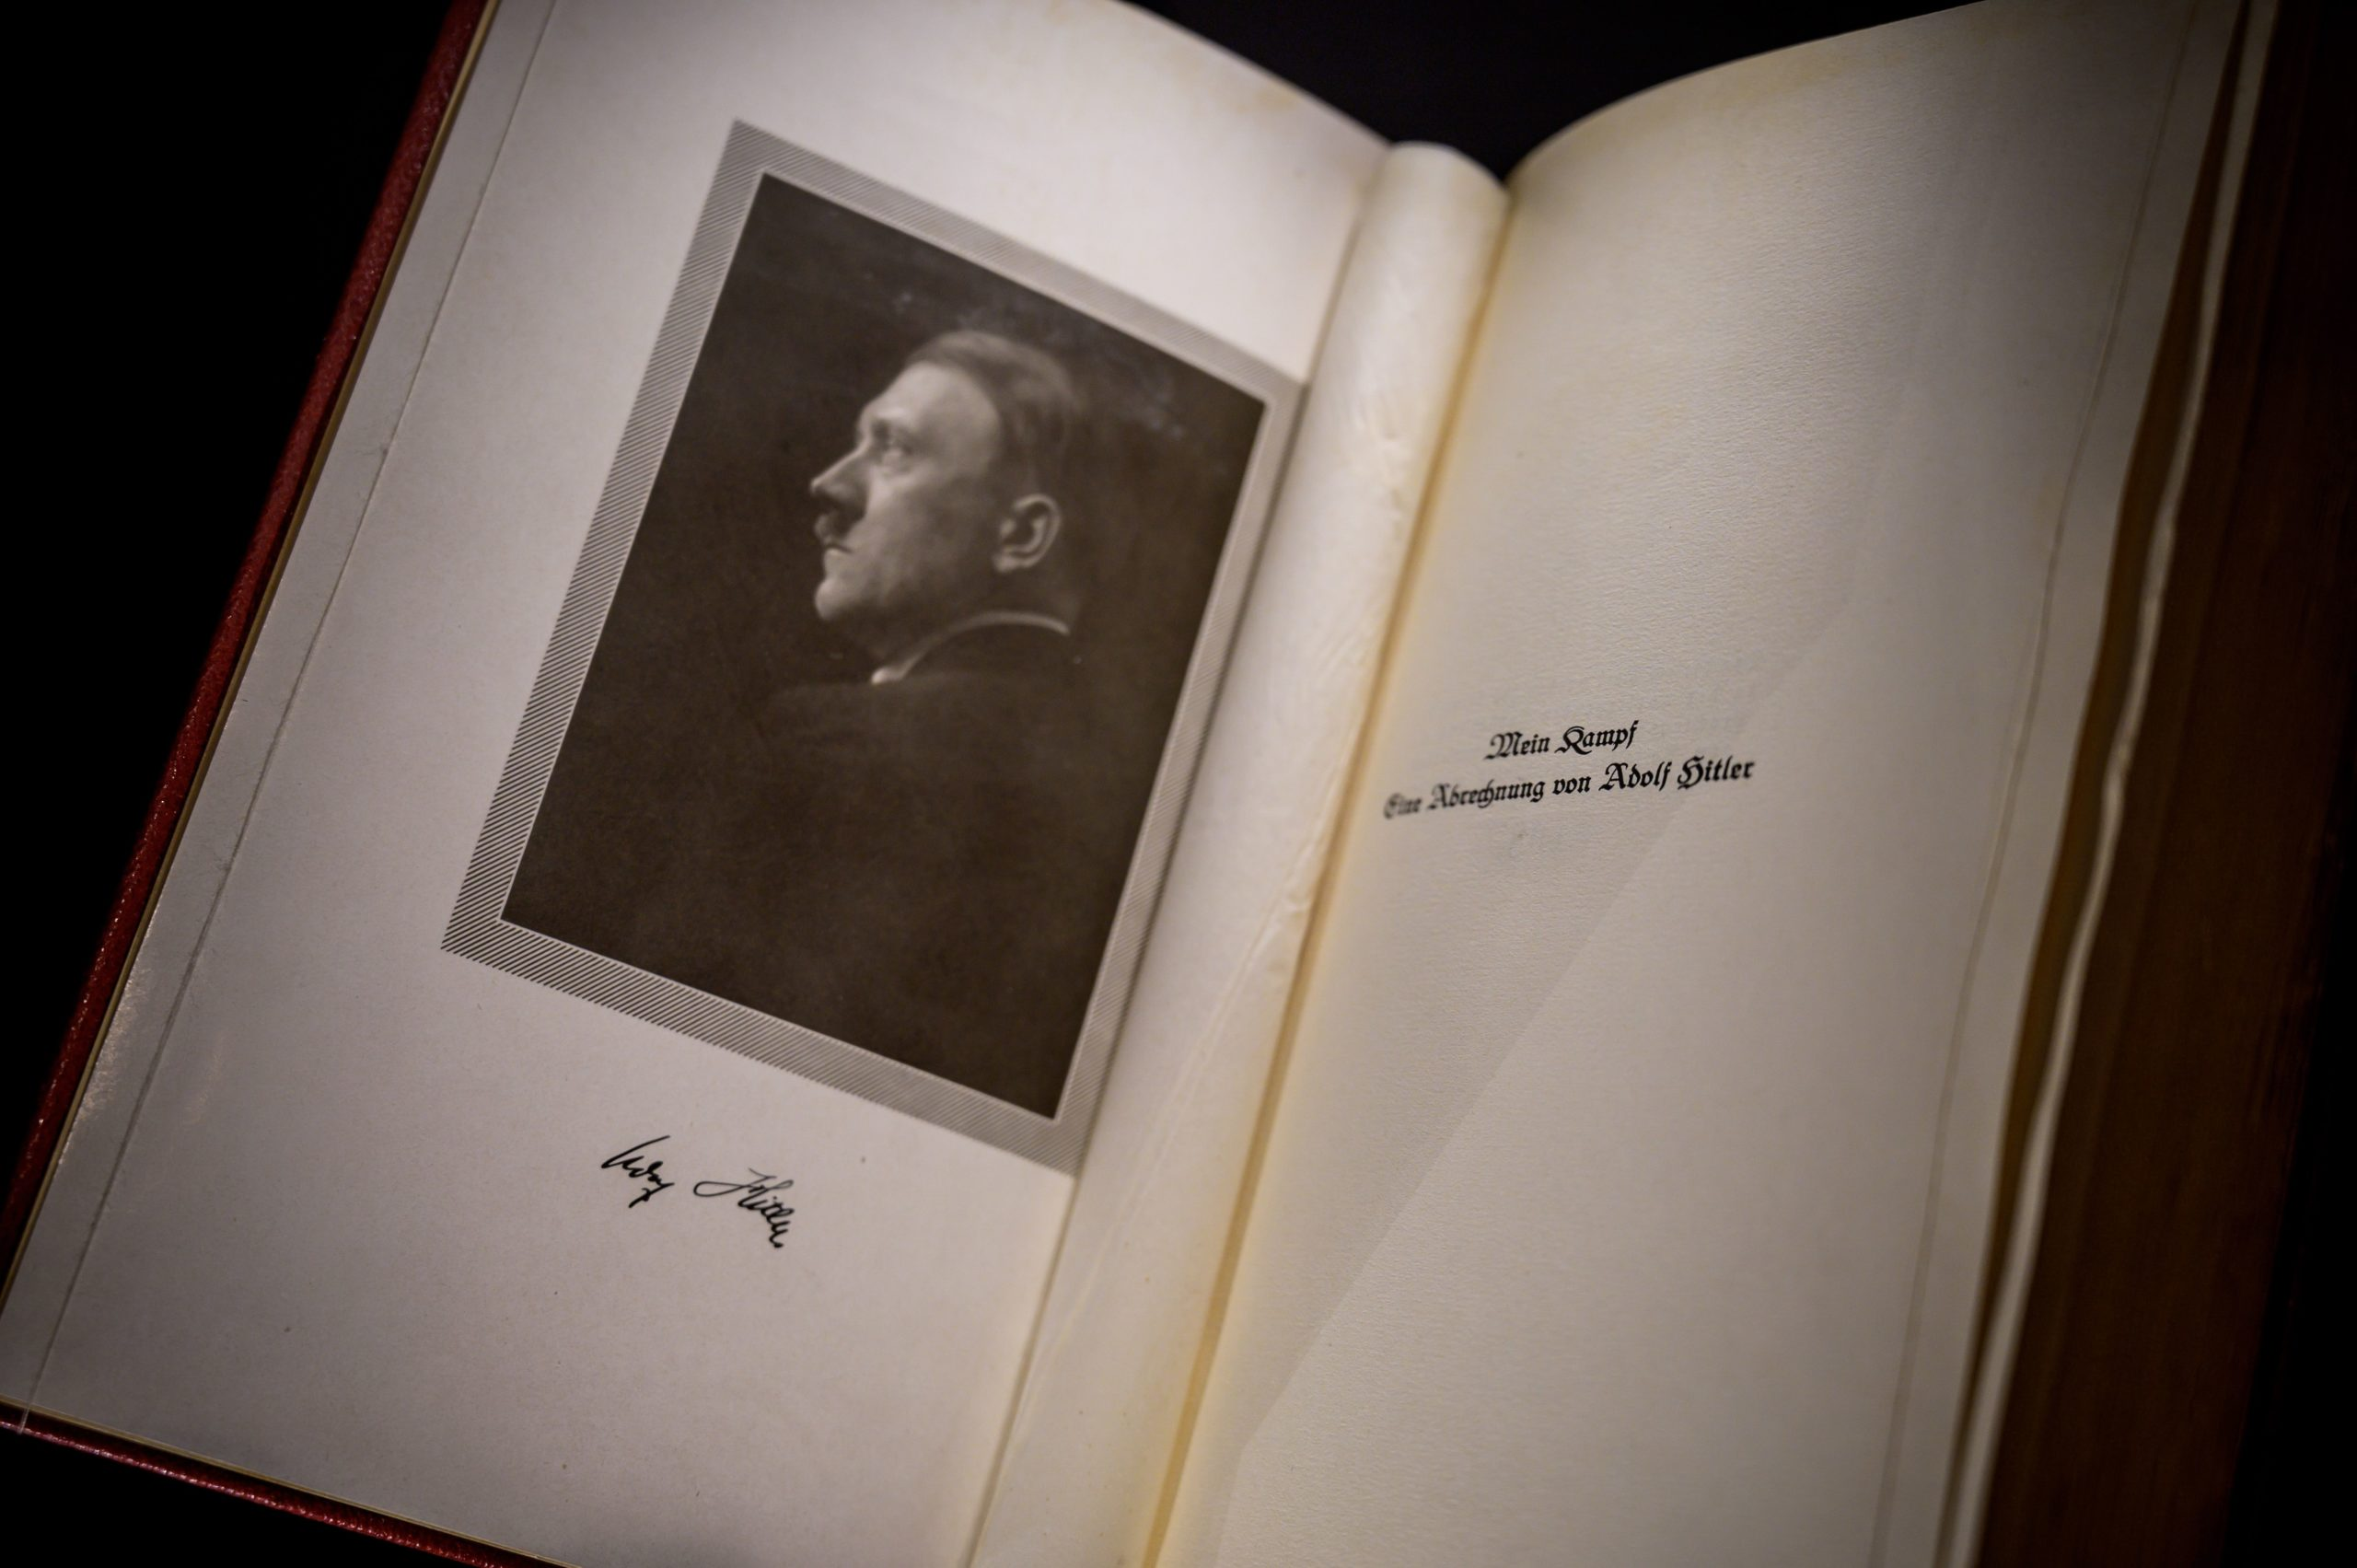 """An autographed original edition of Adolf Hitler's """"My fight"""" book is displayed at Martin Bodmer Foundation during the """"War and Peace"""" exhibition on October 11, 2019 in Cologny near Geneva. - Hitler's """"My fight"""" and a 5,000-year-old peace treaty -- the world's oldest -- represent opposite poles in the eternal human struggle between the propulsion to war and the desire for peace. (Photo by FABRICE COFFRINI / AFP) (Photo by FABRICE COFFRINI/AFP via Getty Images)"""